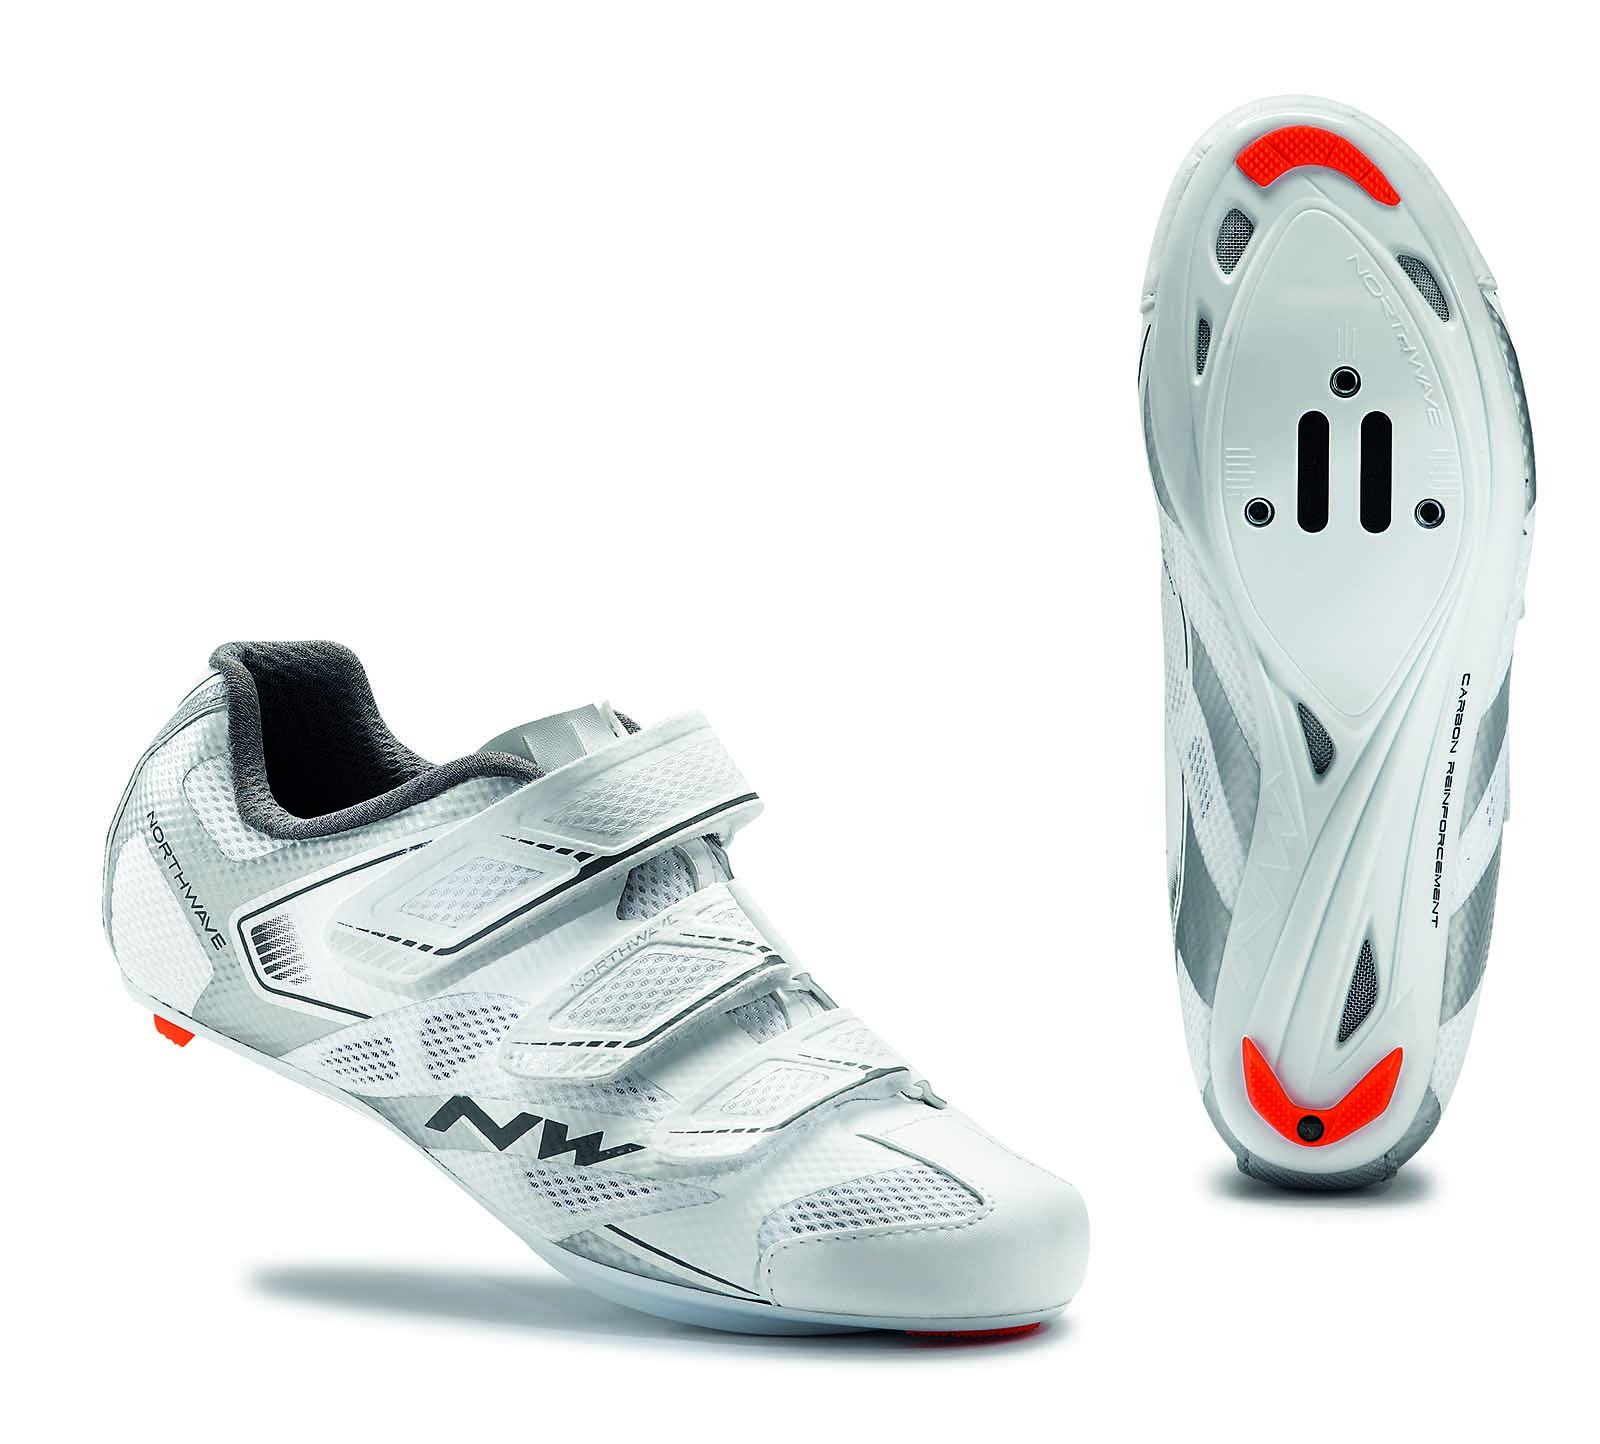 NORTHWAVE Woman road cycling shoes STARLIGHT 2 white/silver (9.5 US)